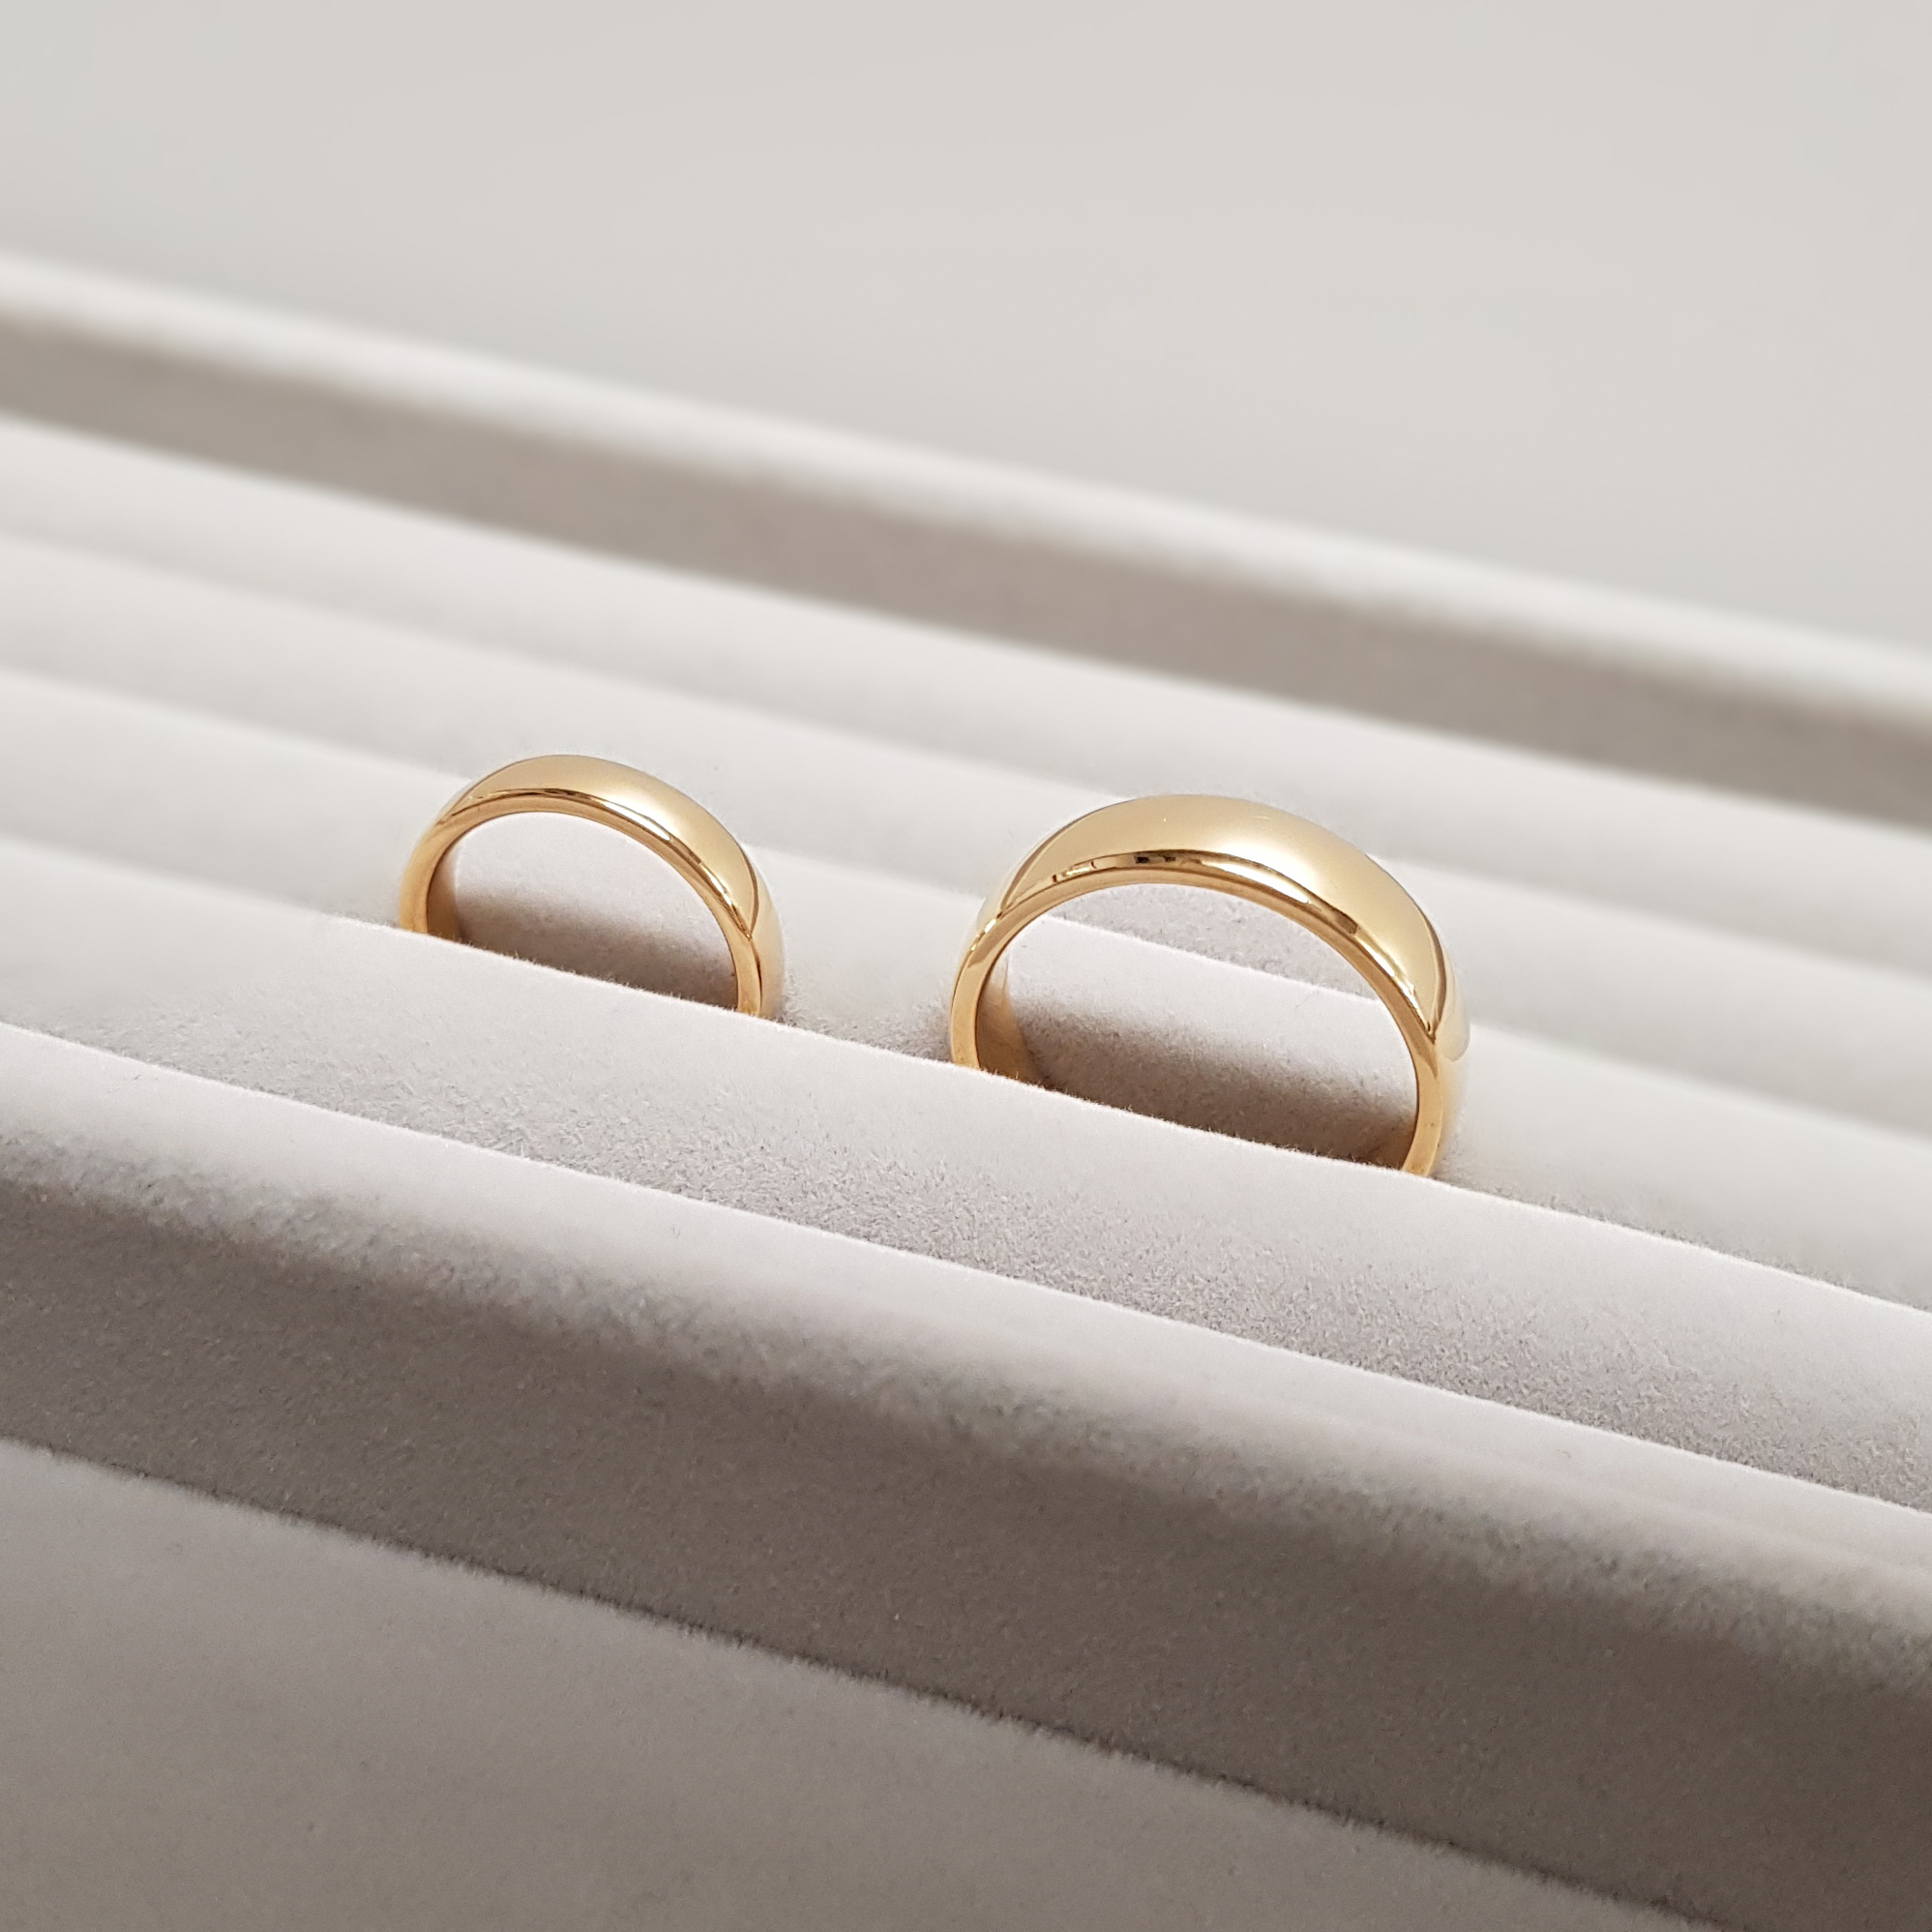 A pair of 22k wedding rings on grey velvet jeweller's display tray.